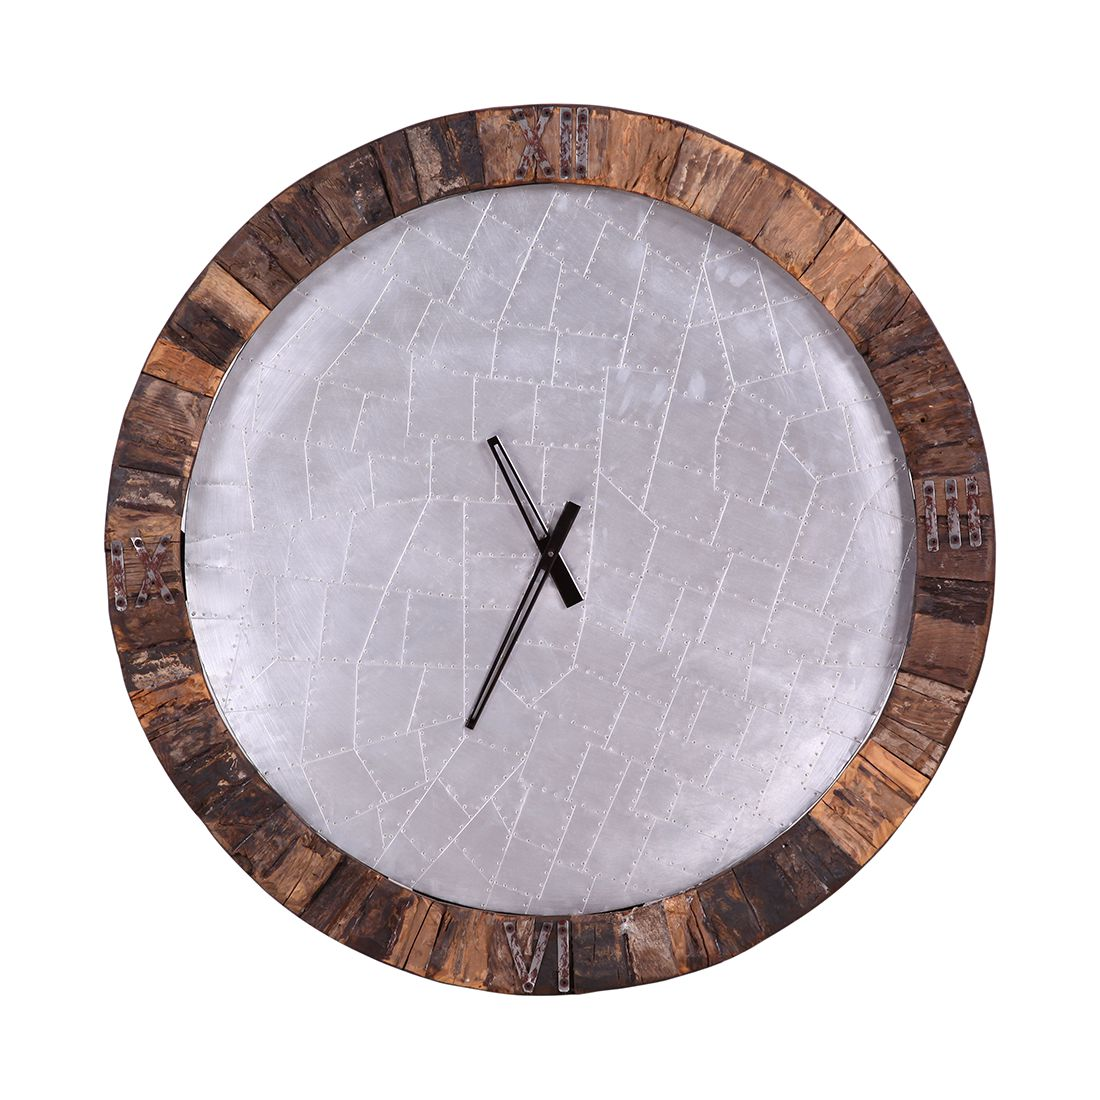 Home 24 - Horloge murale old forest i - bois recyclé - marron / argenté, ars manufacti